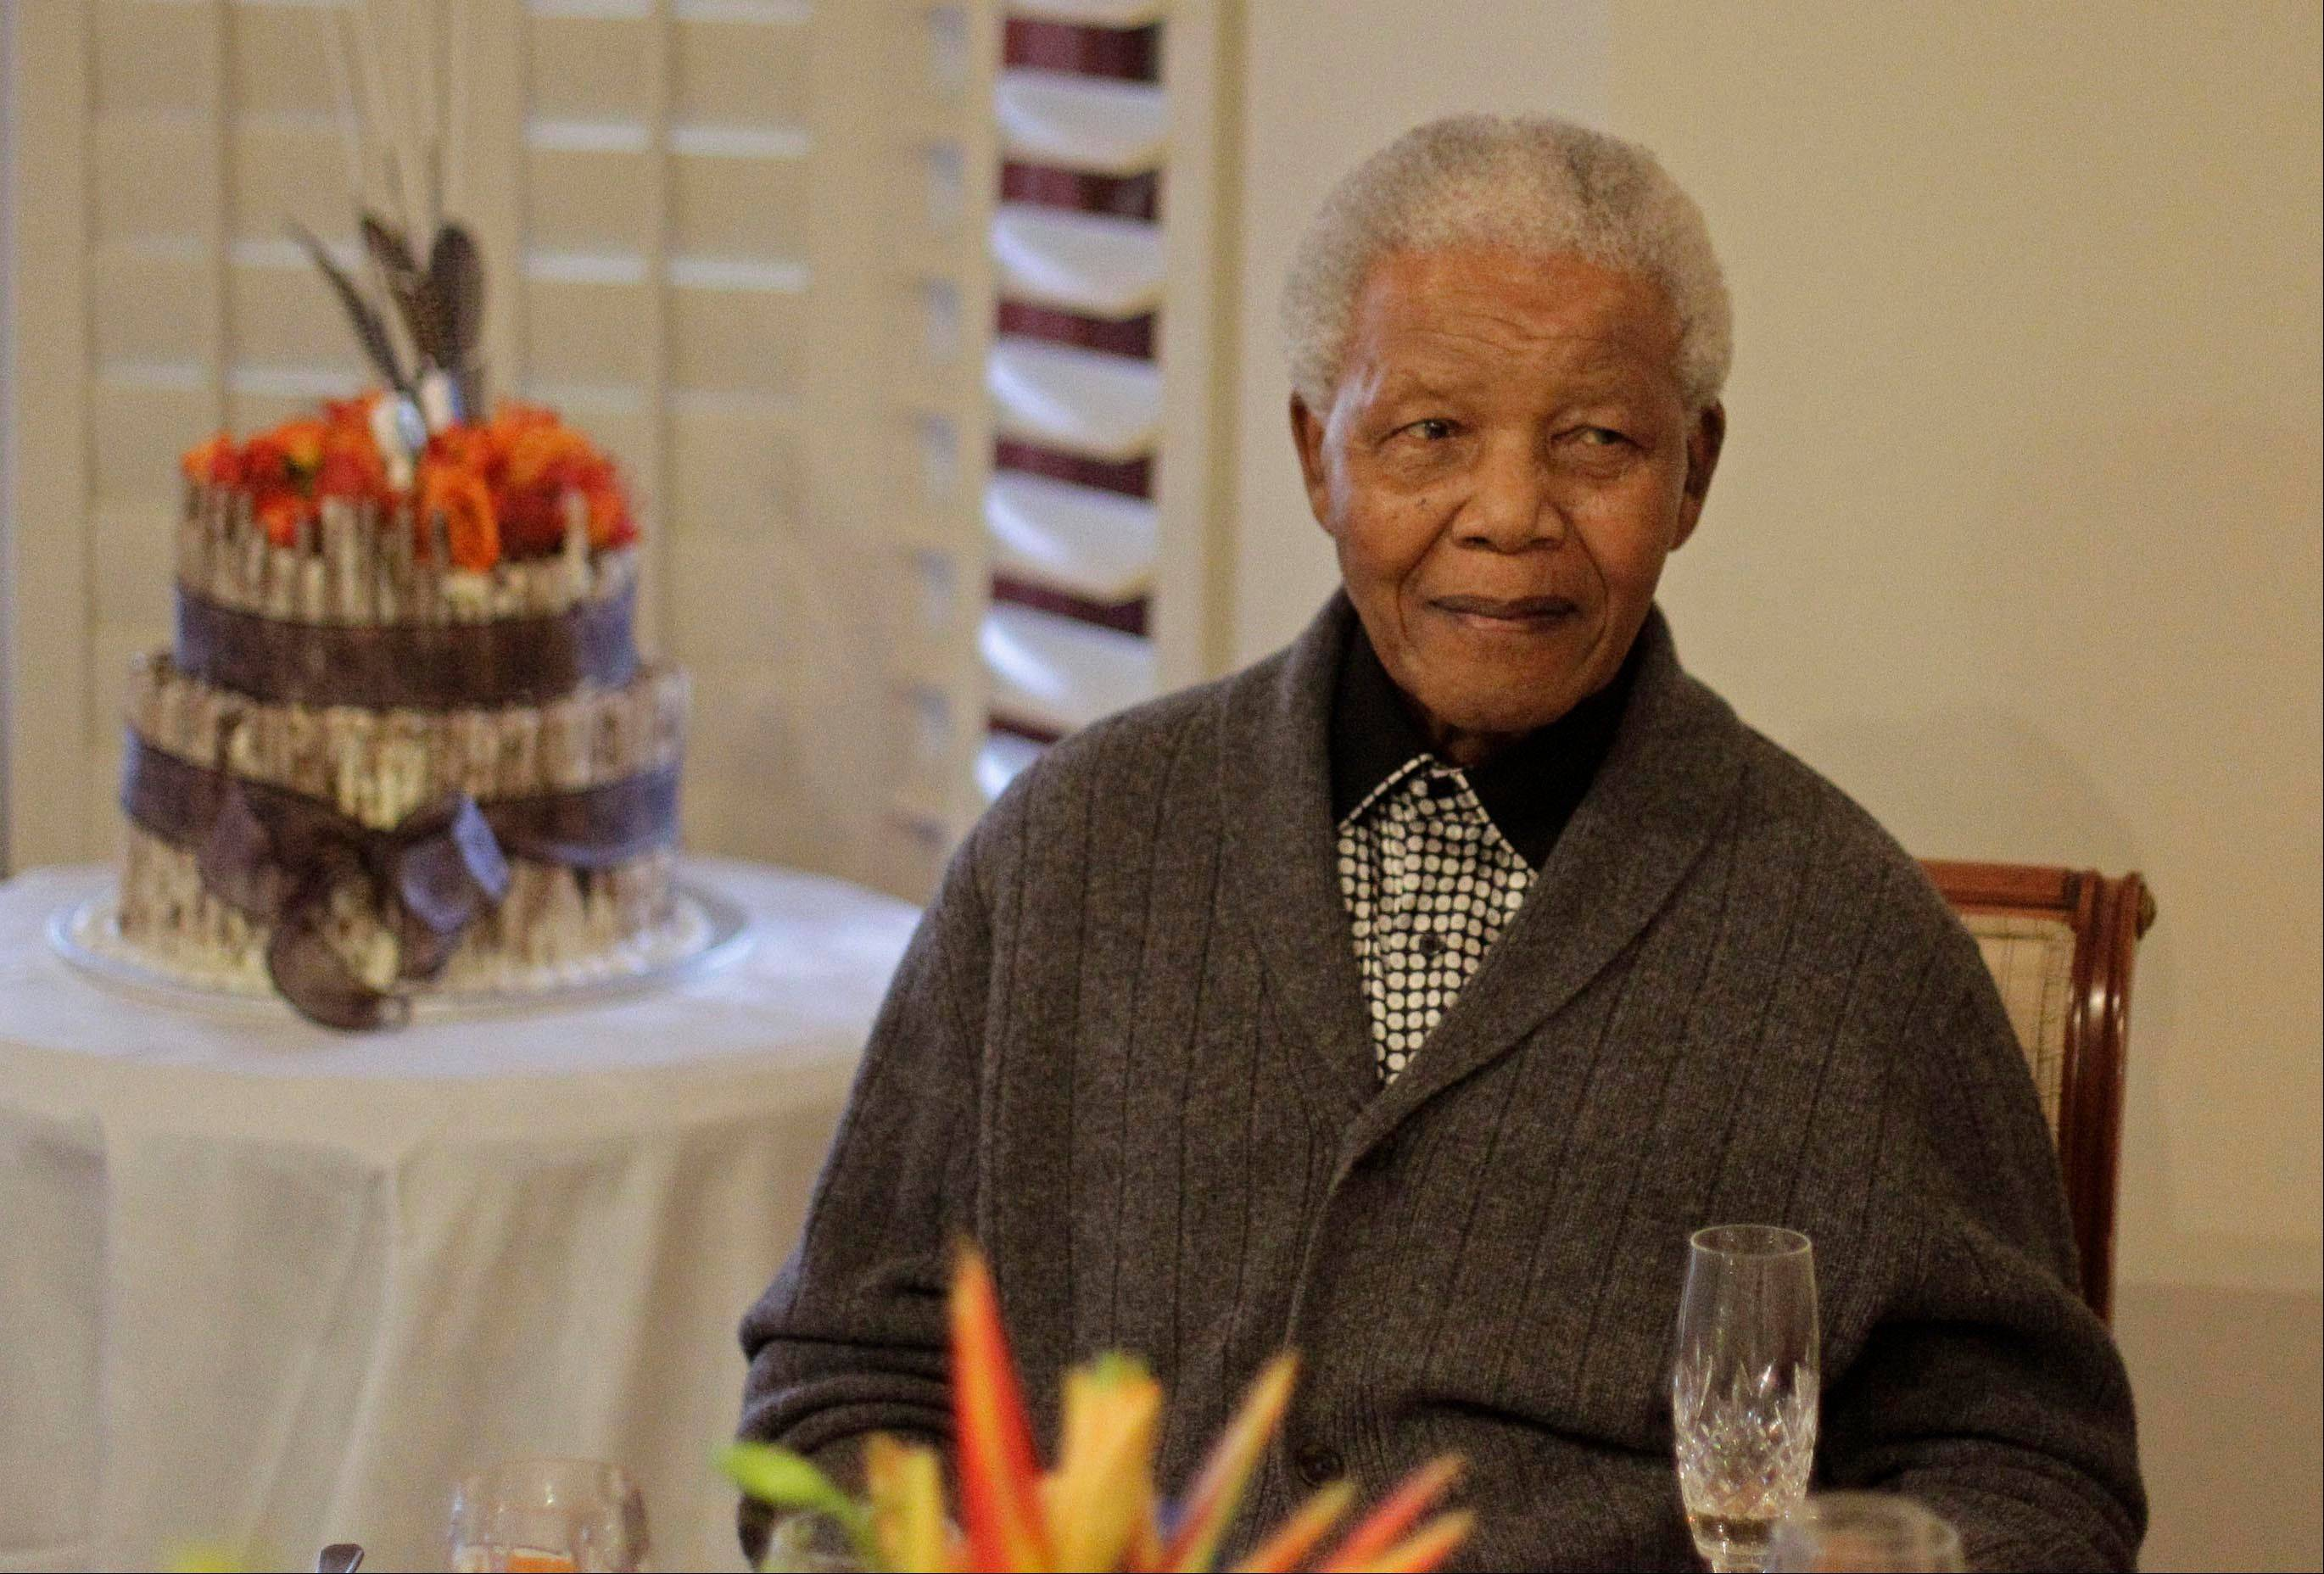 In this file photo, former South African President Nelson Mandela celebrated his 94th birthday in July in Qunu, South Africa. A South African official says Mandela is breathing �without difficulty� after having a procedure to clear fluid in his lung area that was caused by pneumonia.